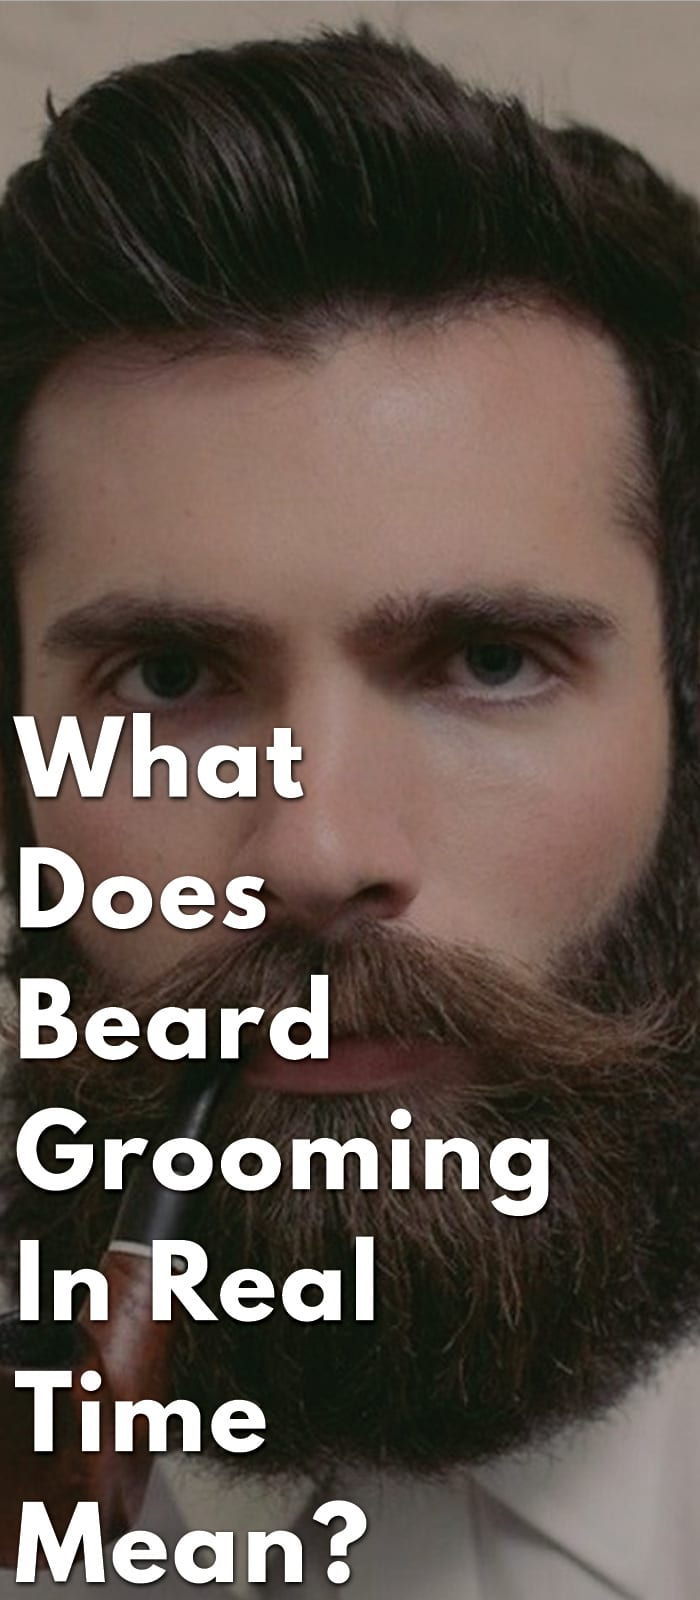 What-Does-Beard-Grooming-in-Real-Time-mean...